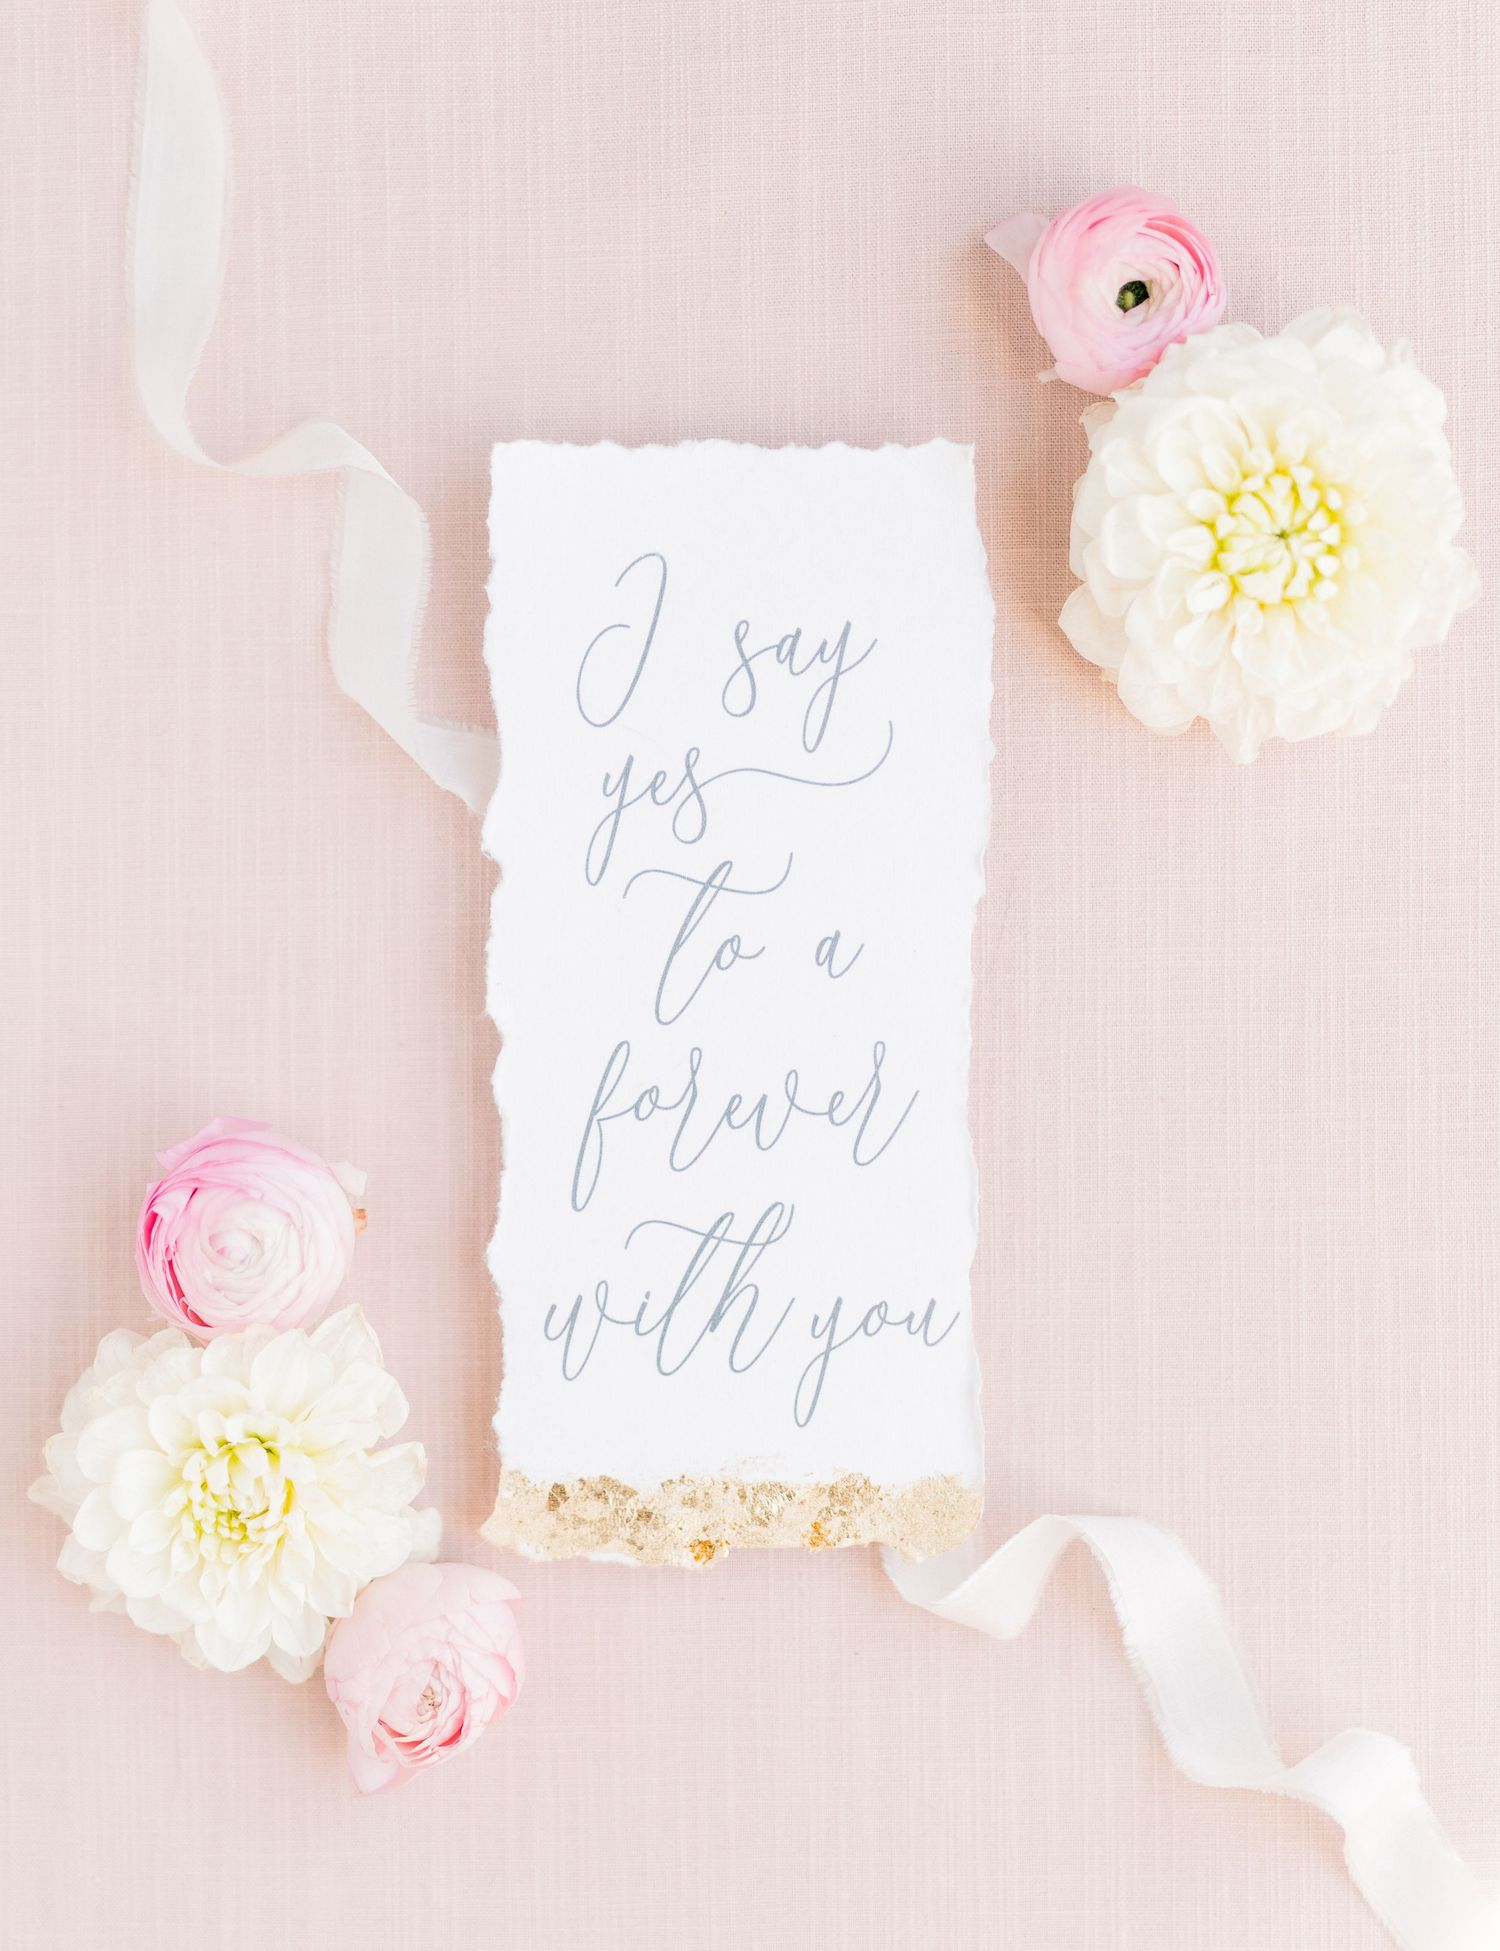 Light and airy film wedding photography flat lay invitation suite des moines iowa with Nicole Laing